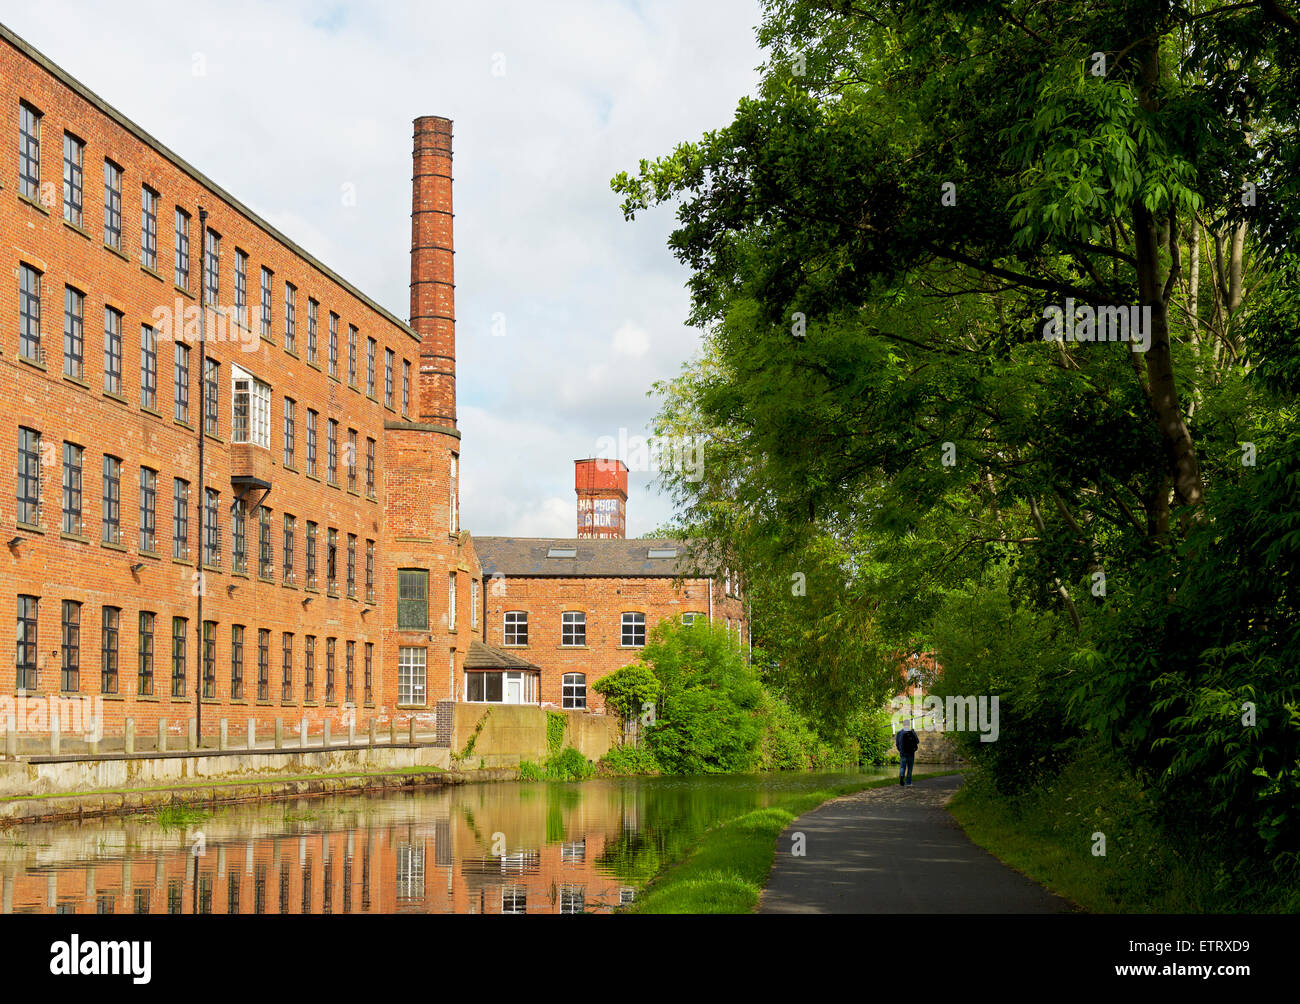 The Leeds-Liverpool Canal in Leeds, West Yorkshire, England UK - Stock Image